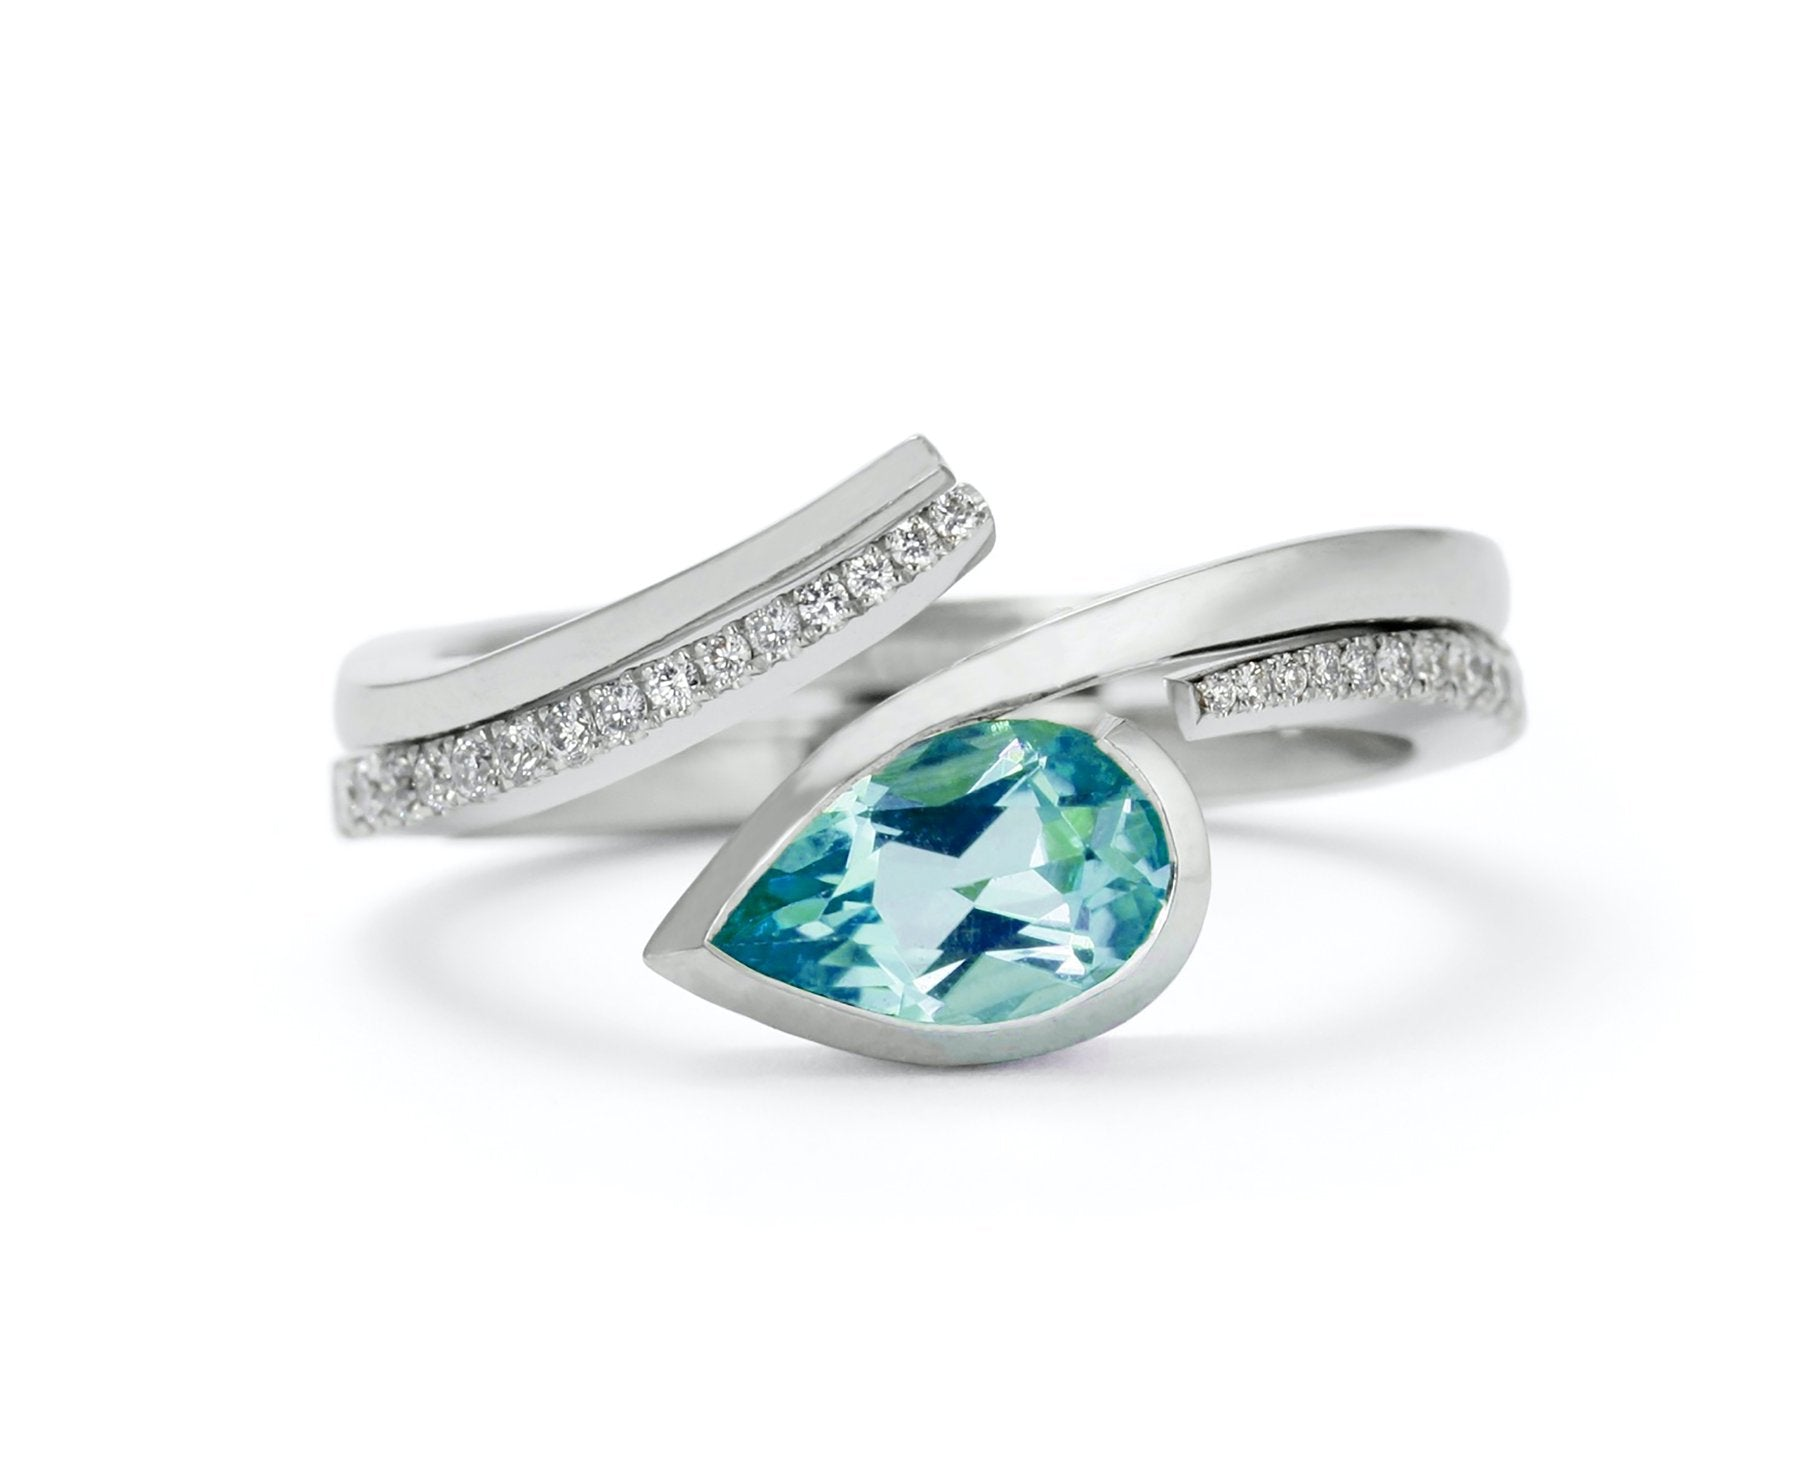 Hand-forged platinum Twist engagement ring with pear Paraiba tourmaline